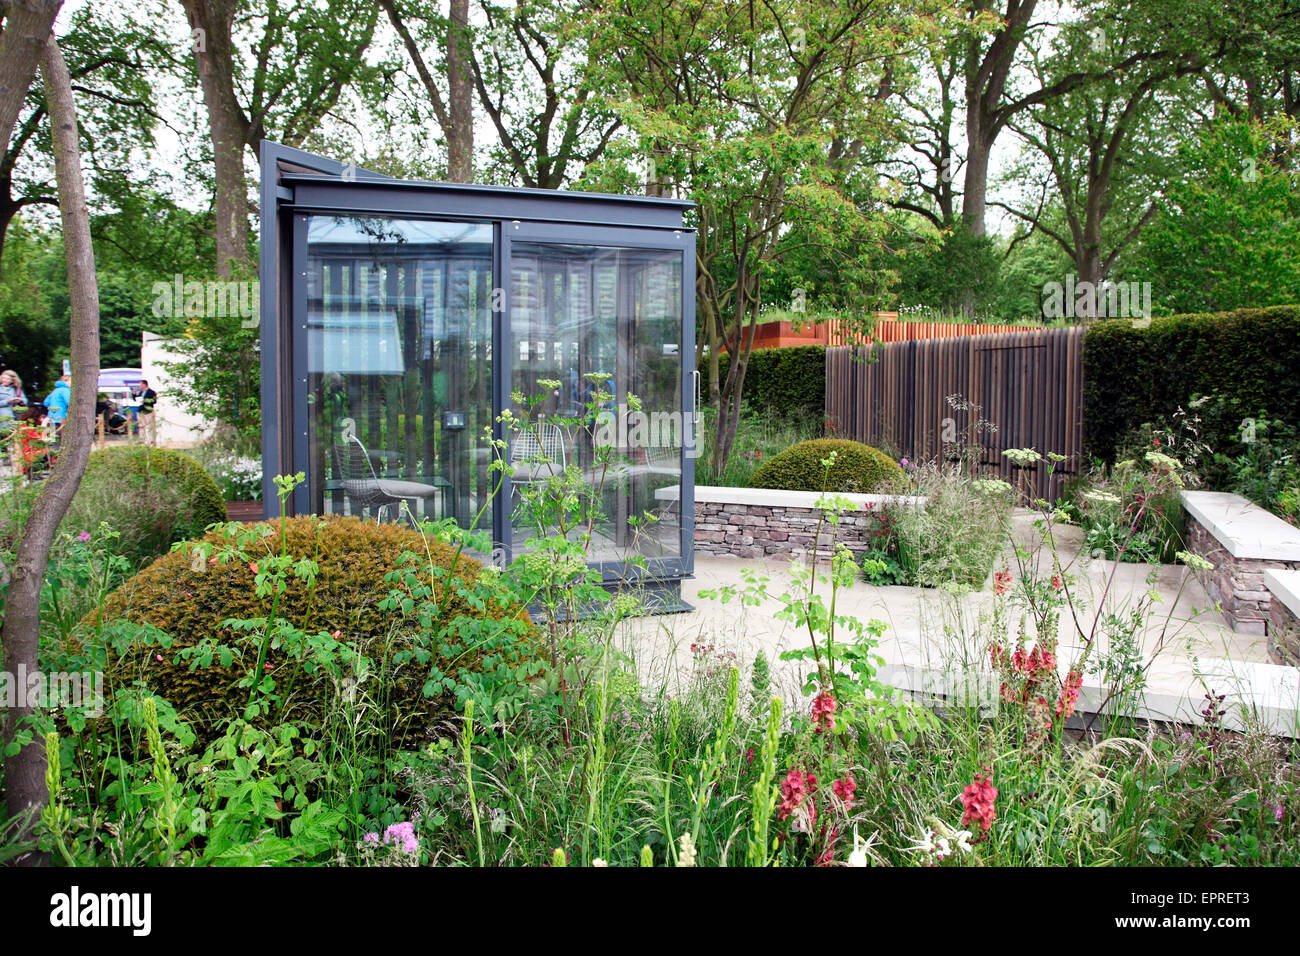 stock photo the cloudy bay garden by harry and and david rich at rhs chelsea flower show 2015 - Garden By The Bay Flower Show